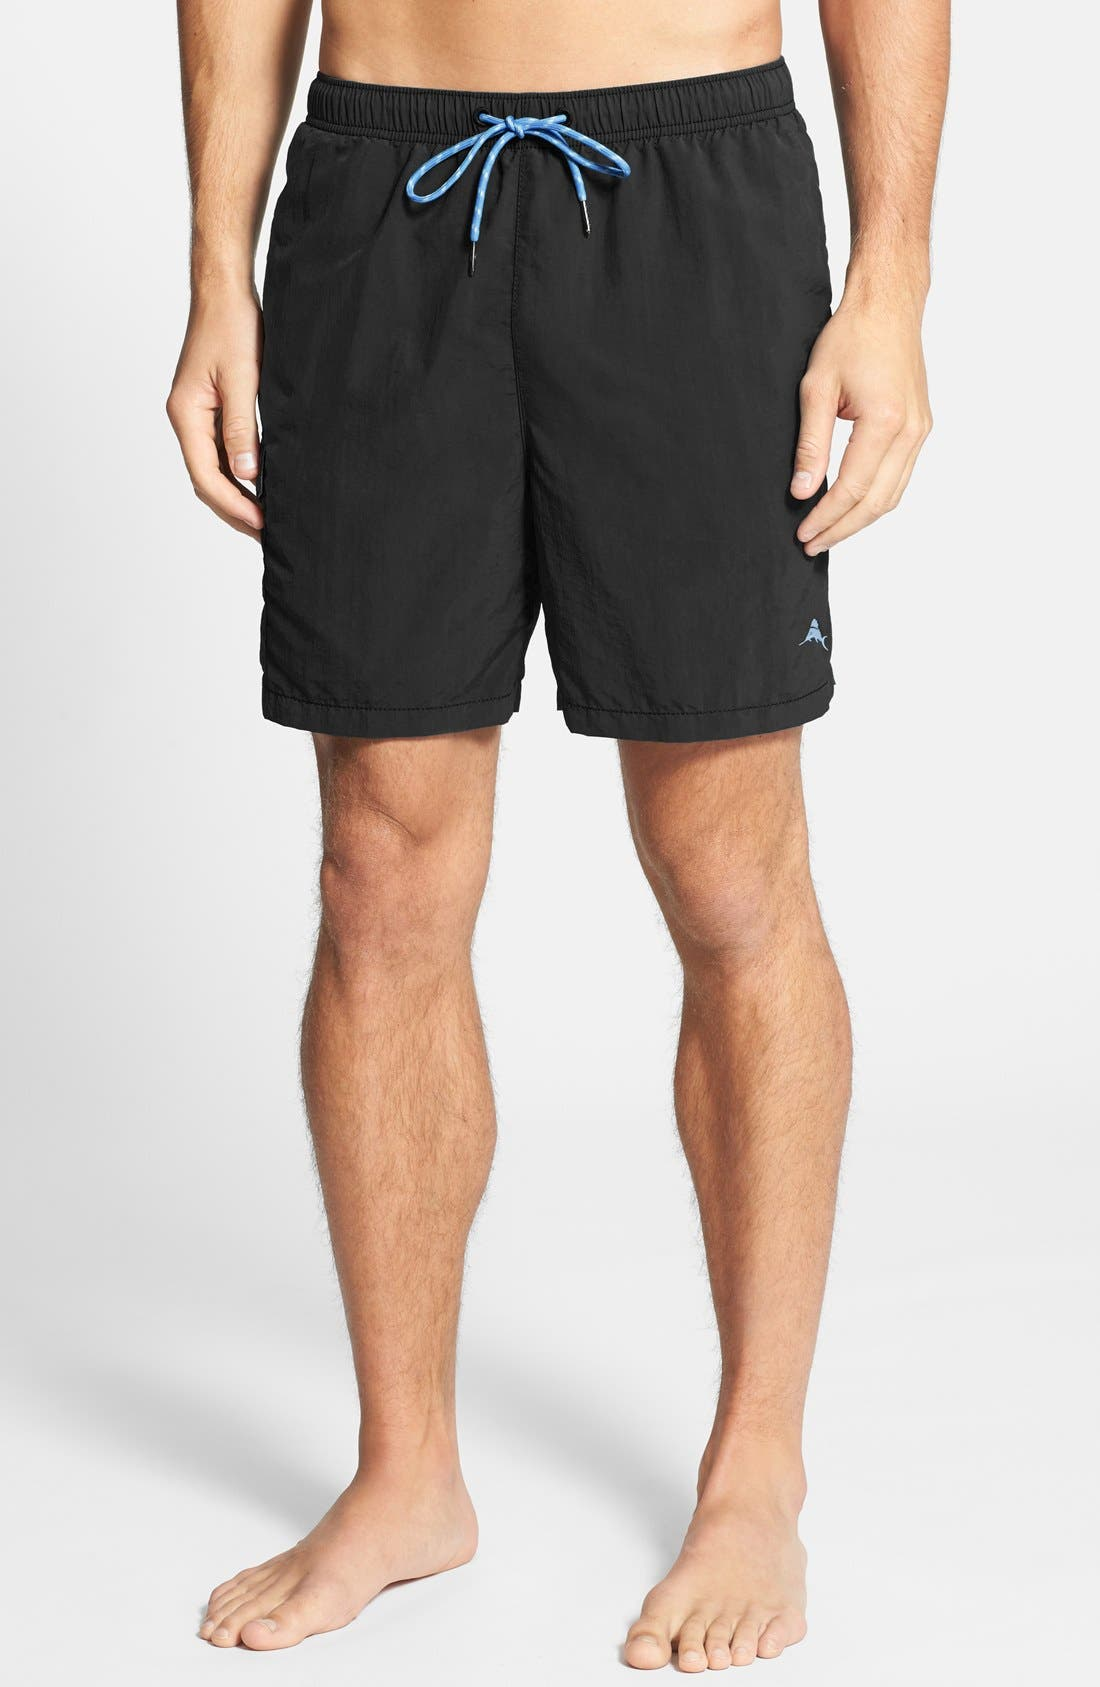 Naples Happy Go Cargo Swim Trunks,                         Main,                         color, Black